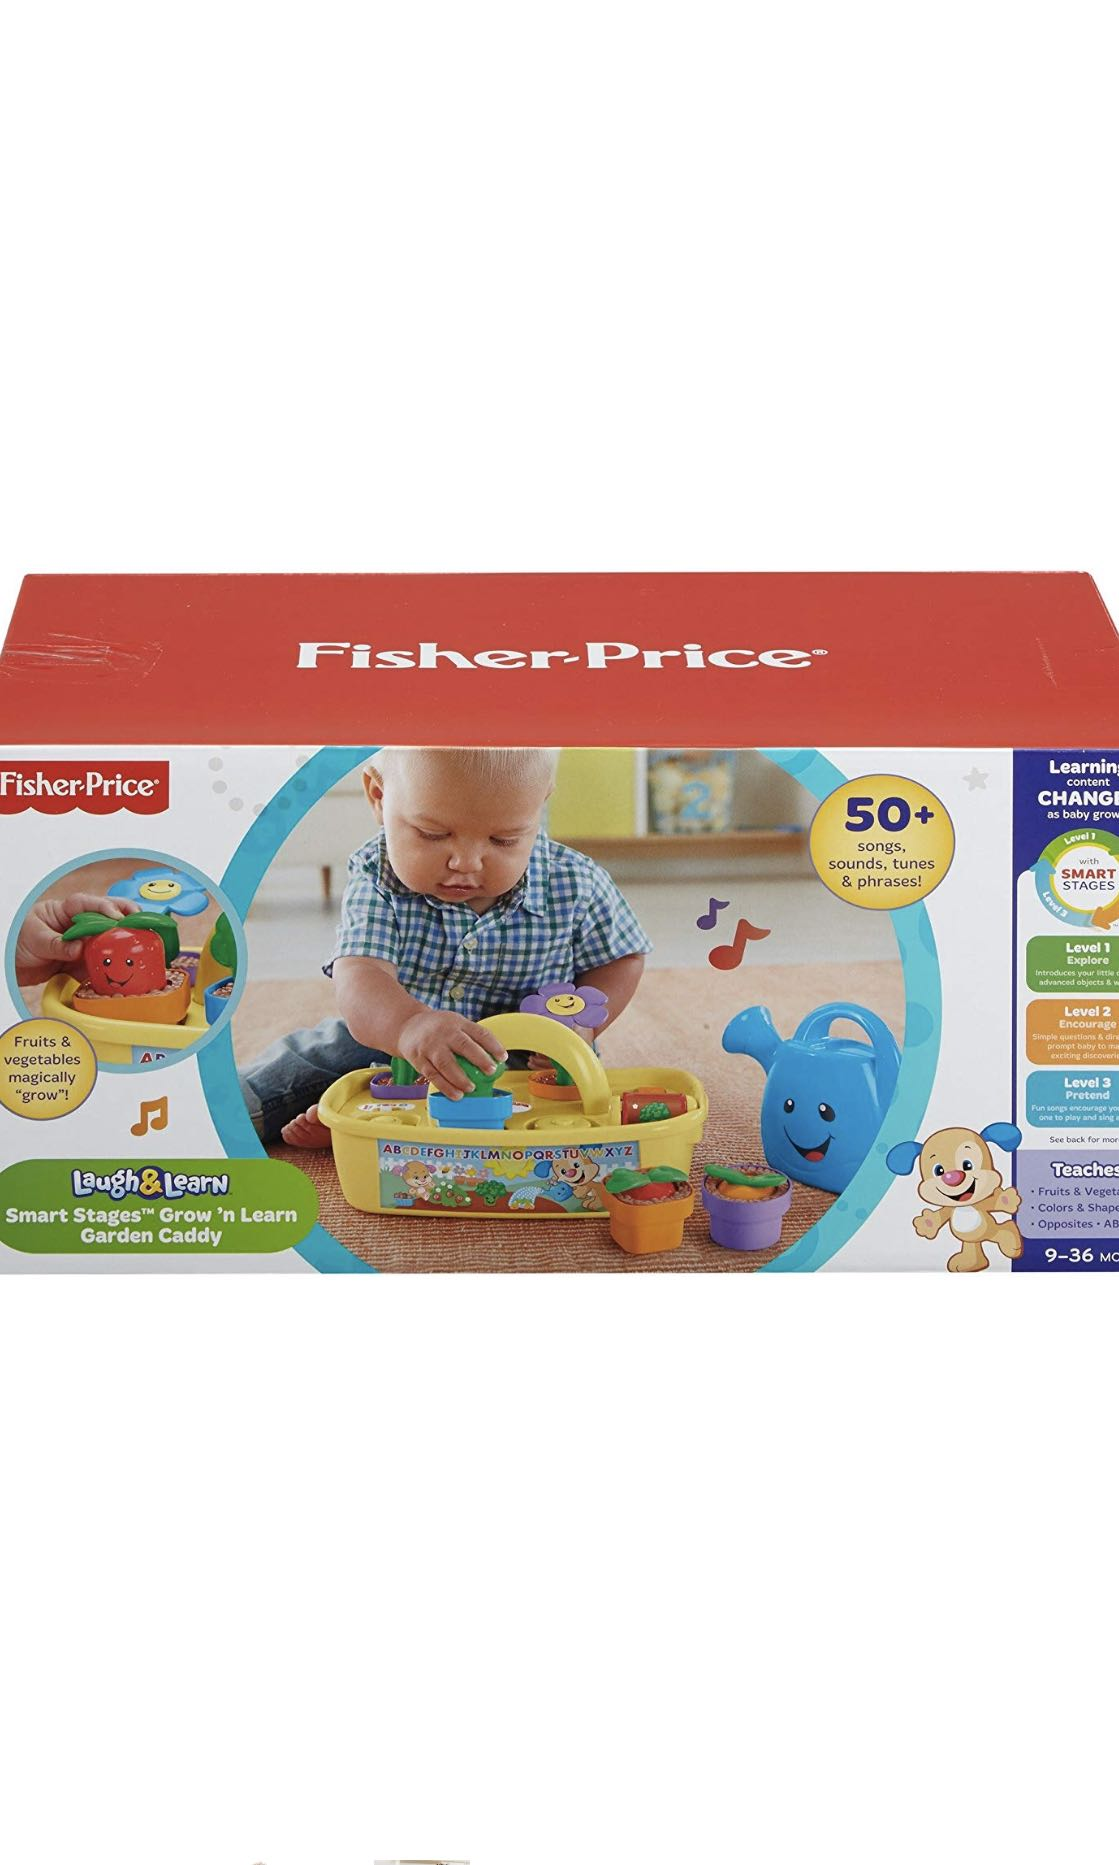 da8f33d7d429 Fisher-Price Laugh & Learn Smart Stages Grow 'n Learn Garden Caddy ...